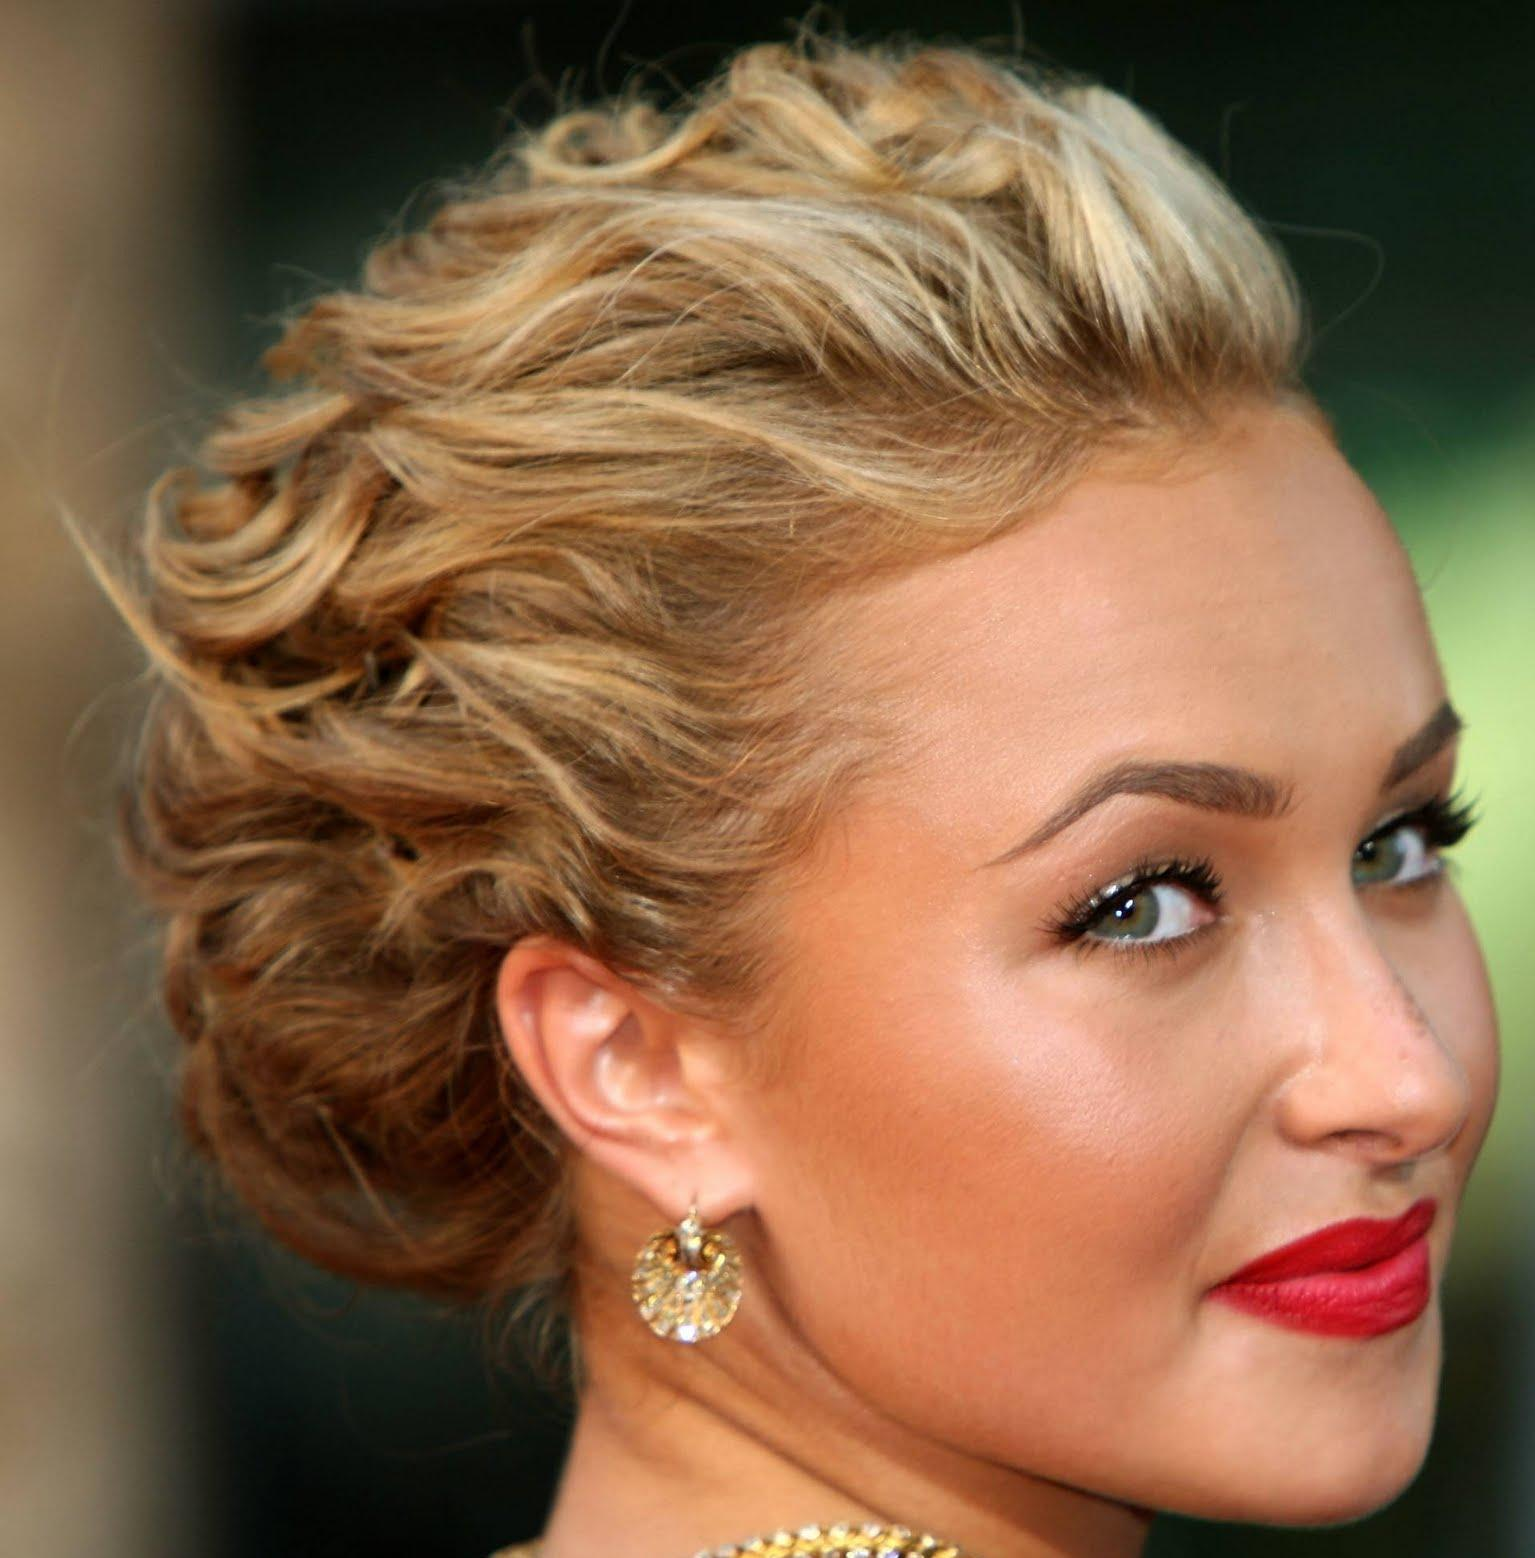 11 Elegant And Effective Prom Hairstyles For Girls With Thin